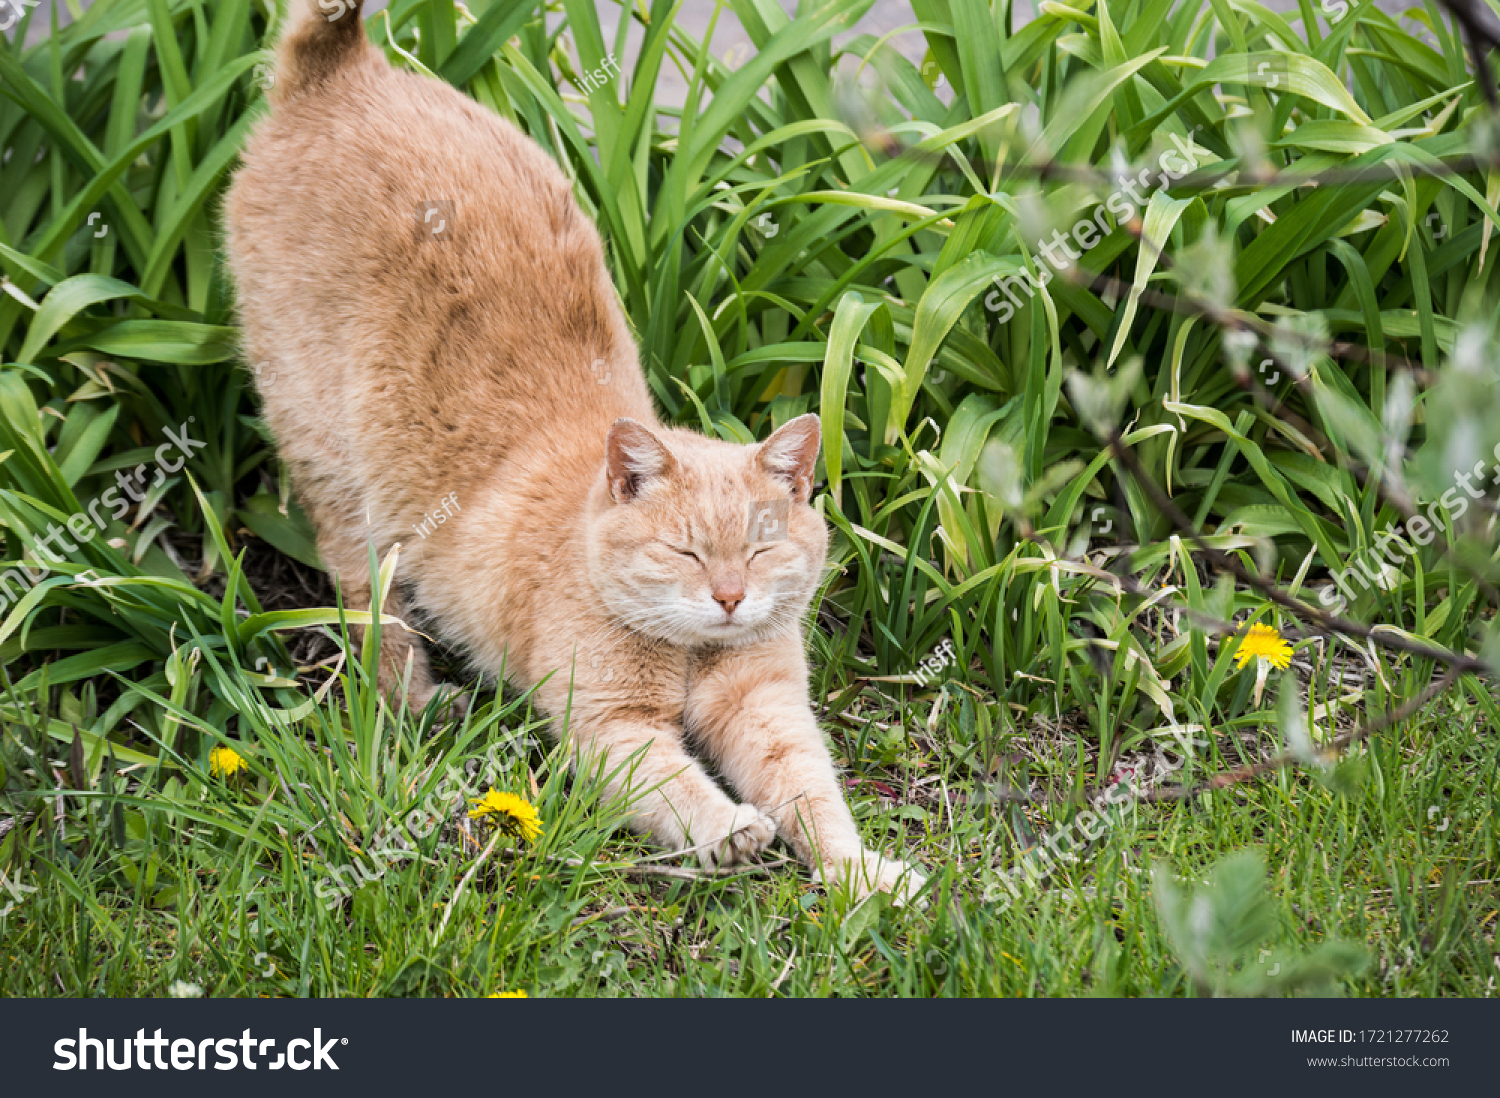 stock-photo-red-cat-stretches-in-the-gre